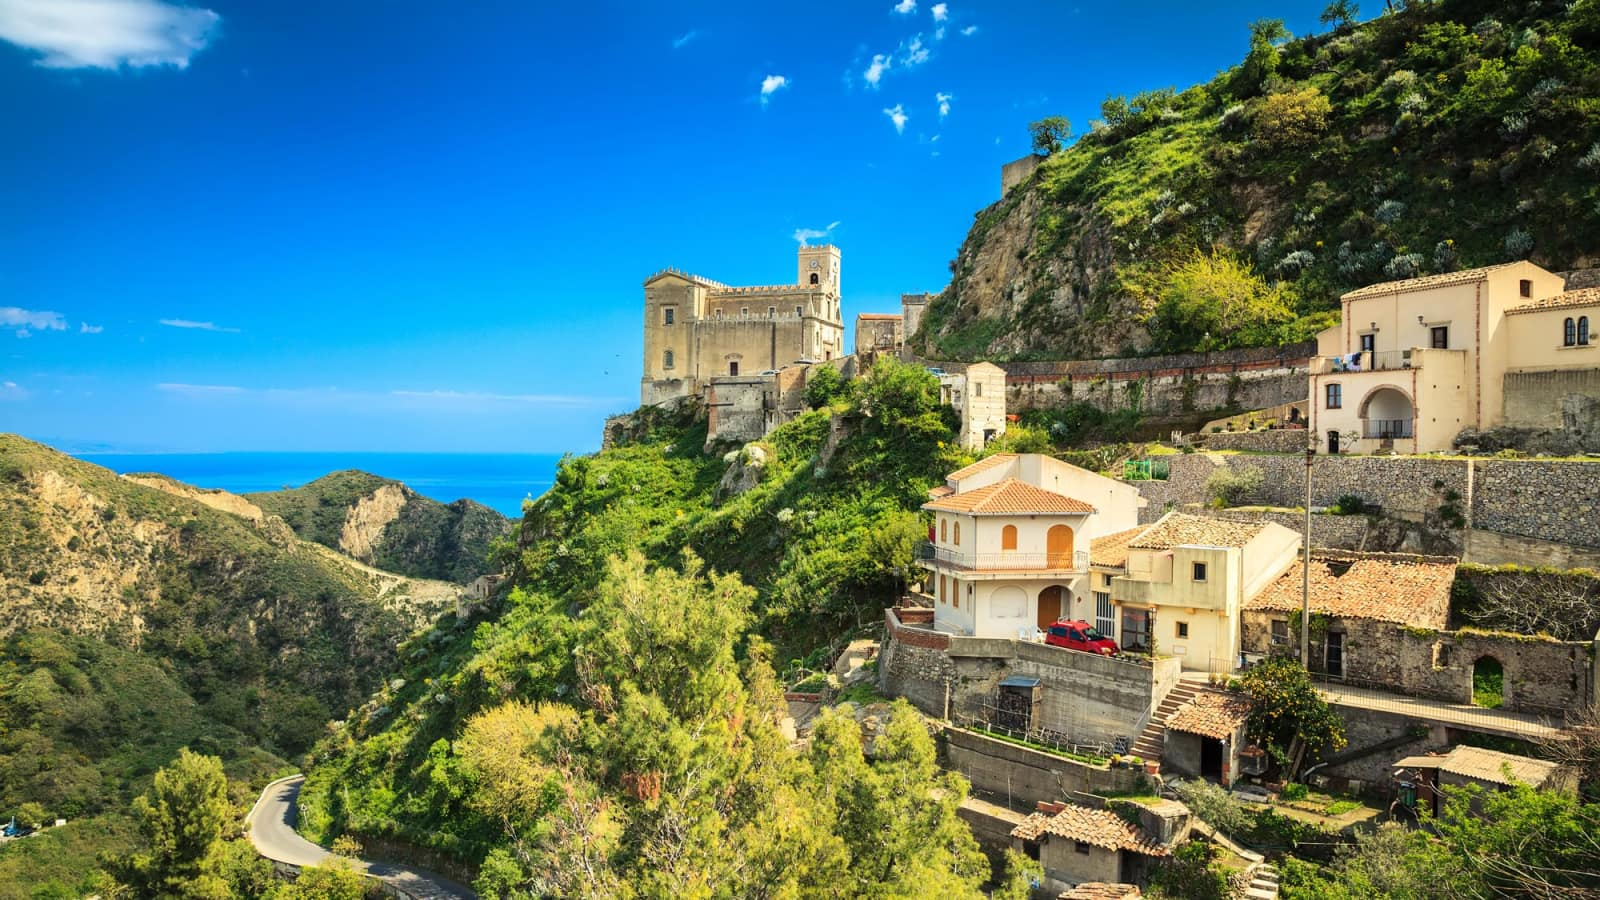 Holidays To Taormina Sicily Topflight Ireland S